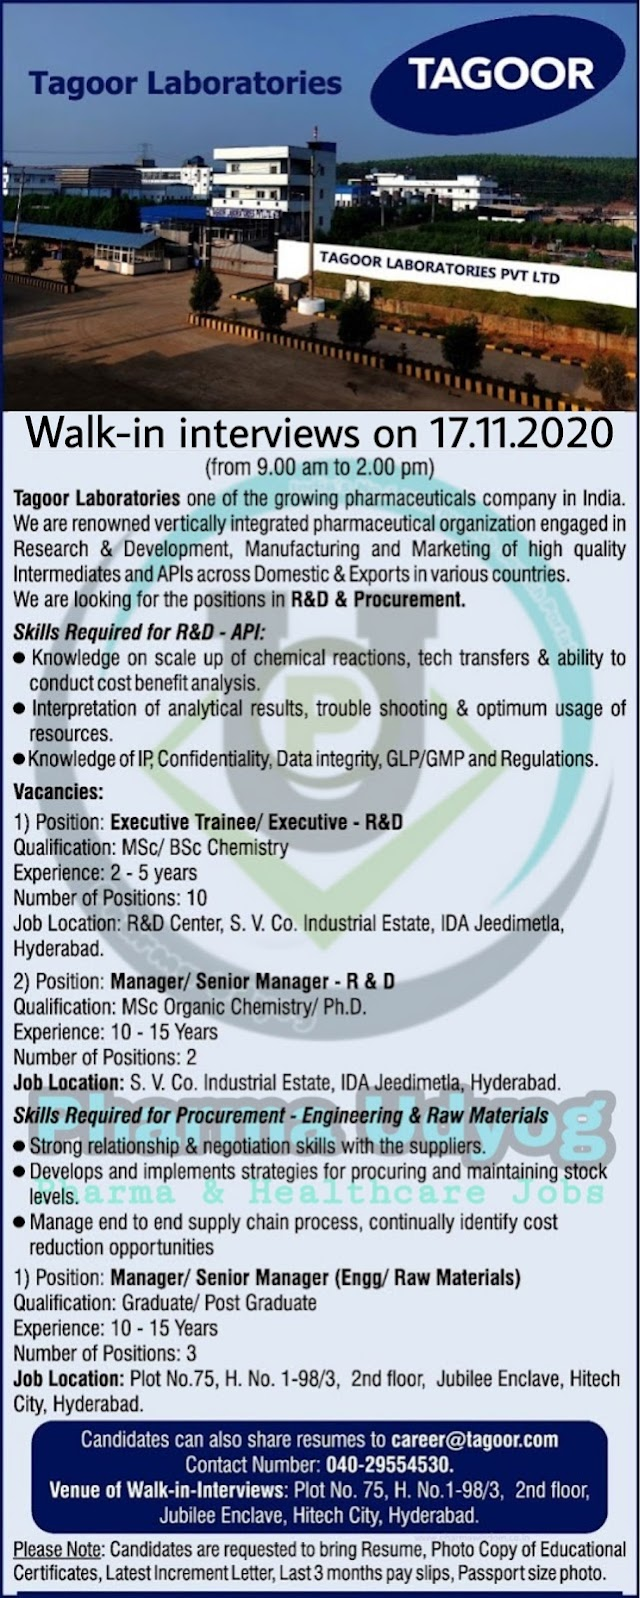 Tagoor Laboratories | Walk-In for R&D / Procurement (Engineering / Raw Materials) on 17th Nov 2020 at Hyderabad